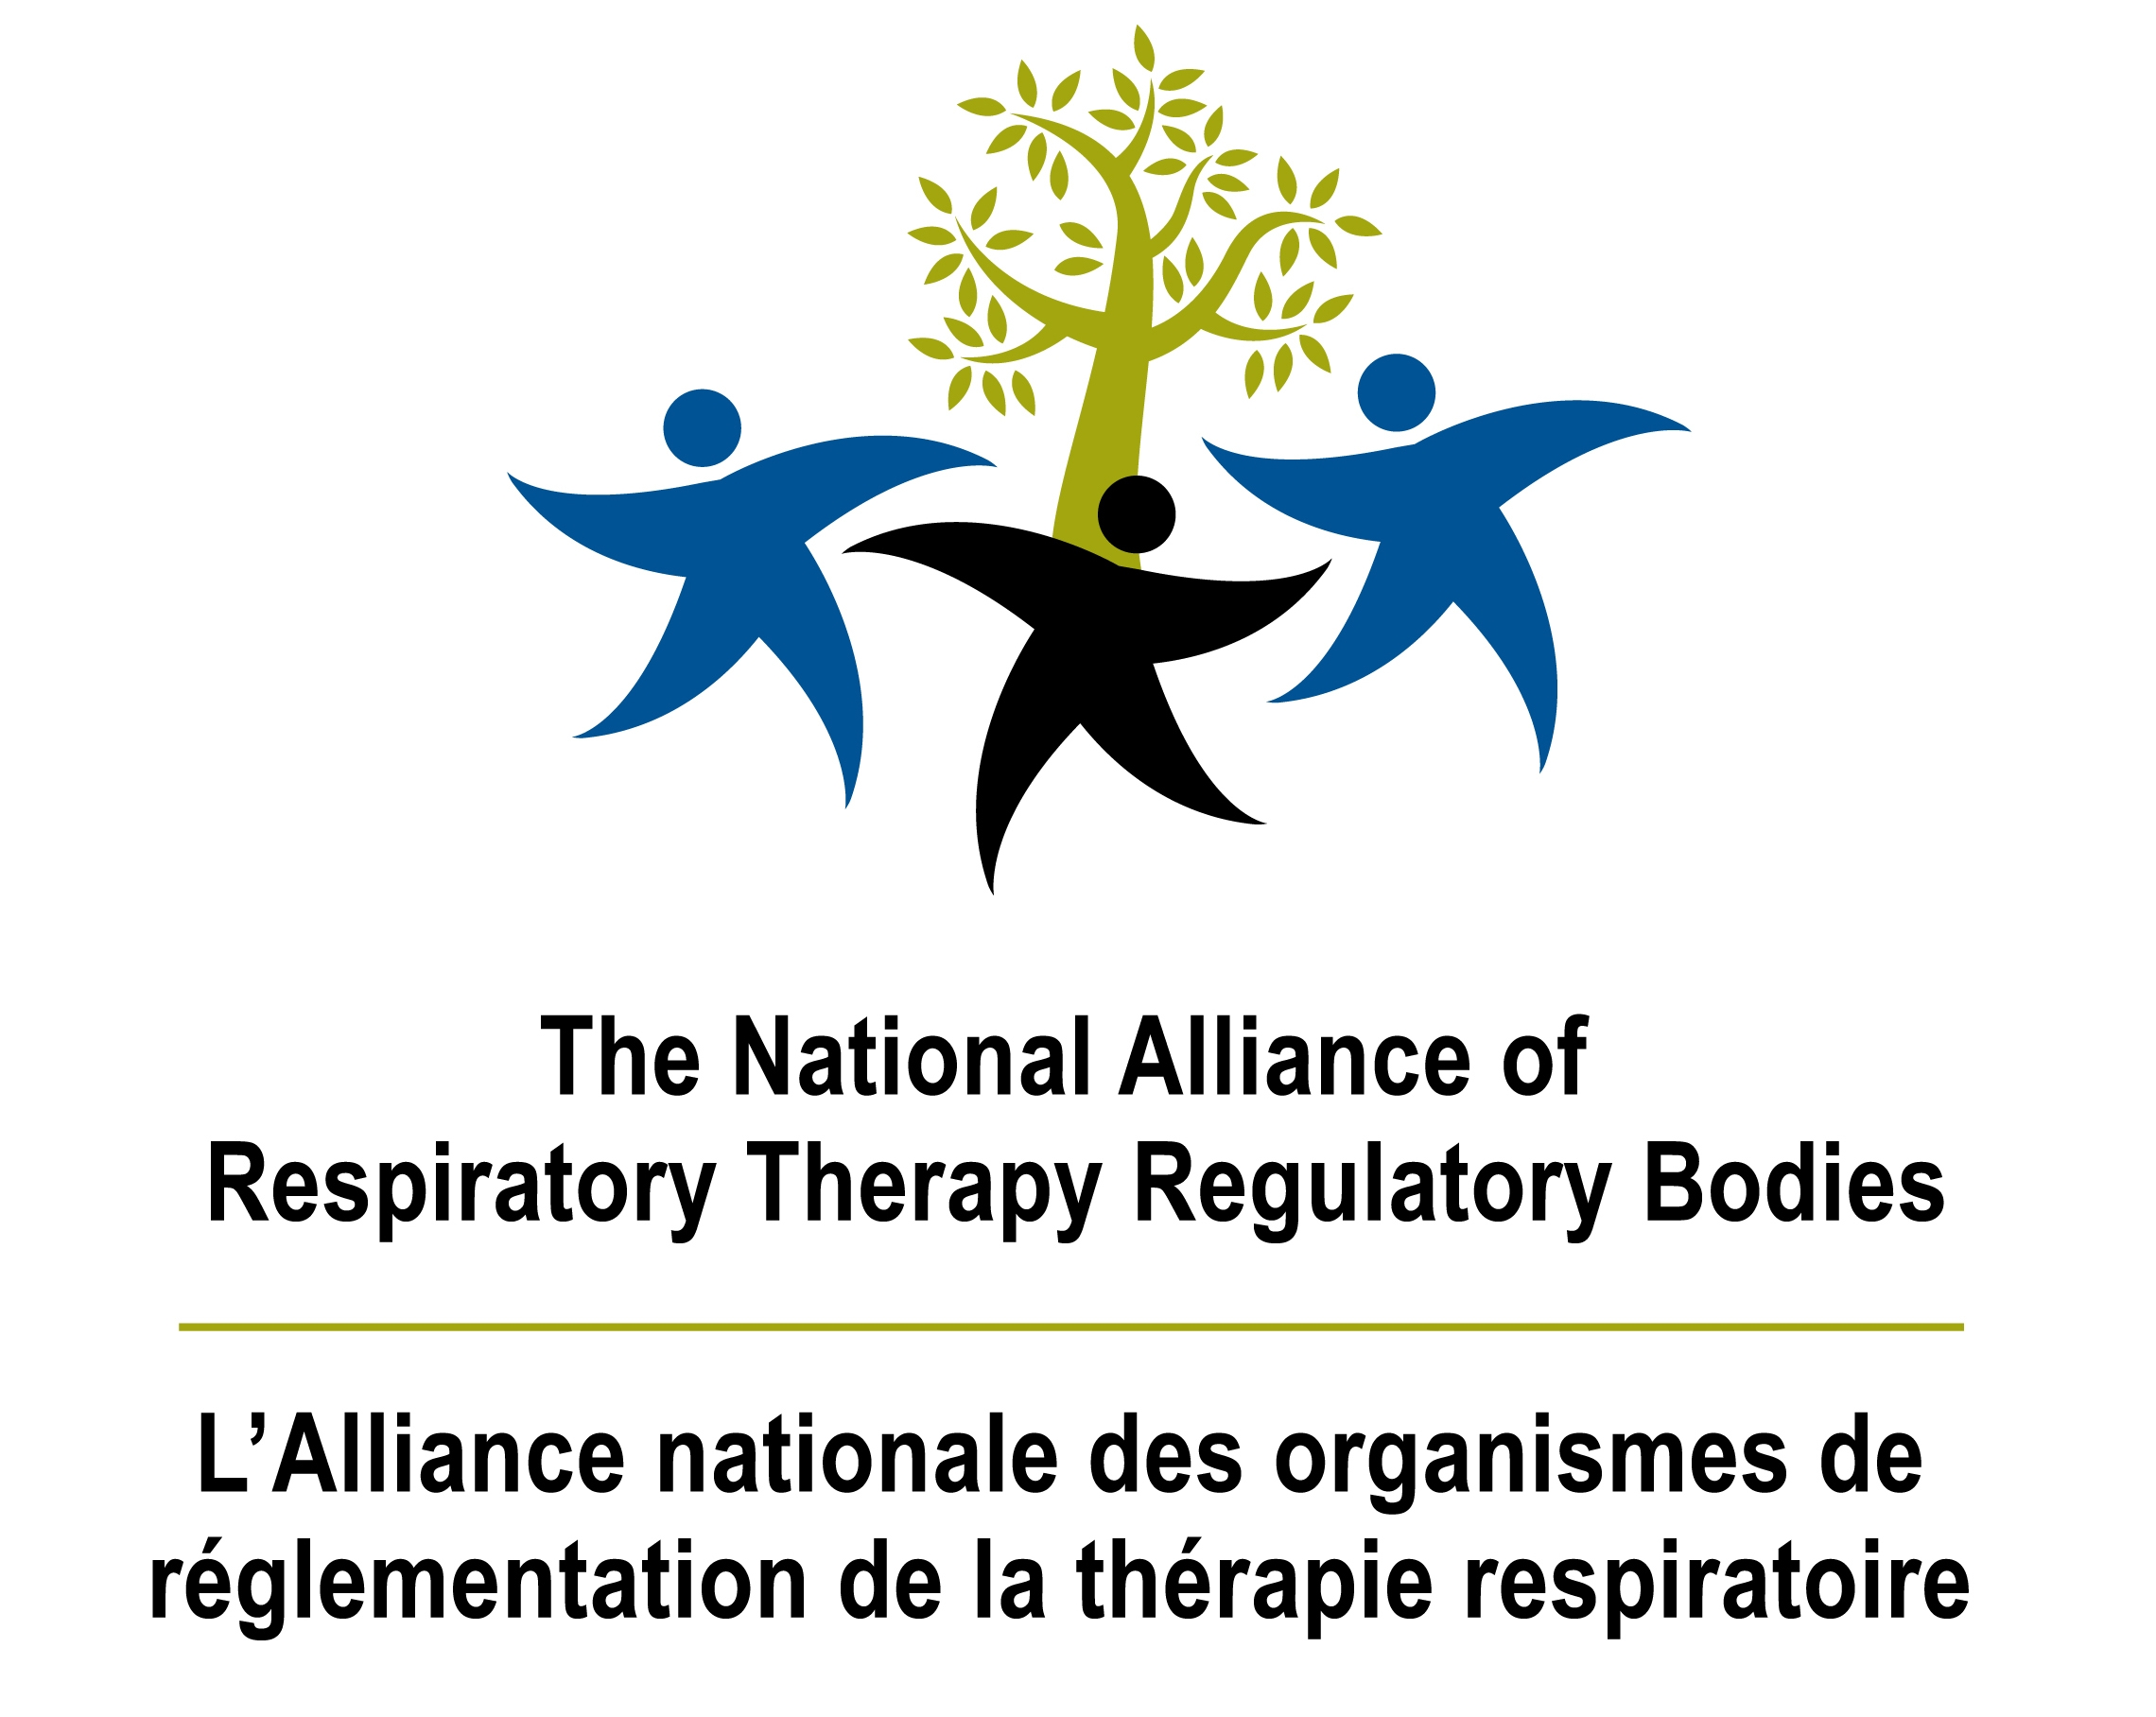 The National Alliance of Respiratory Therapy Regulatory Bodies